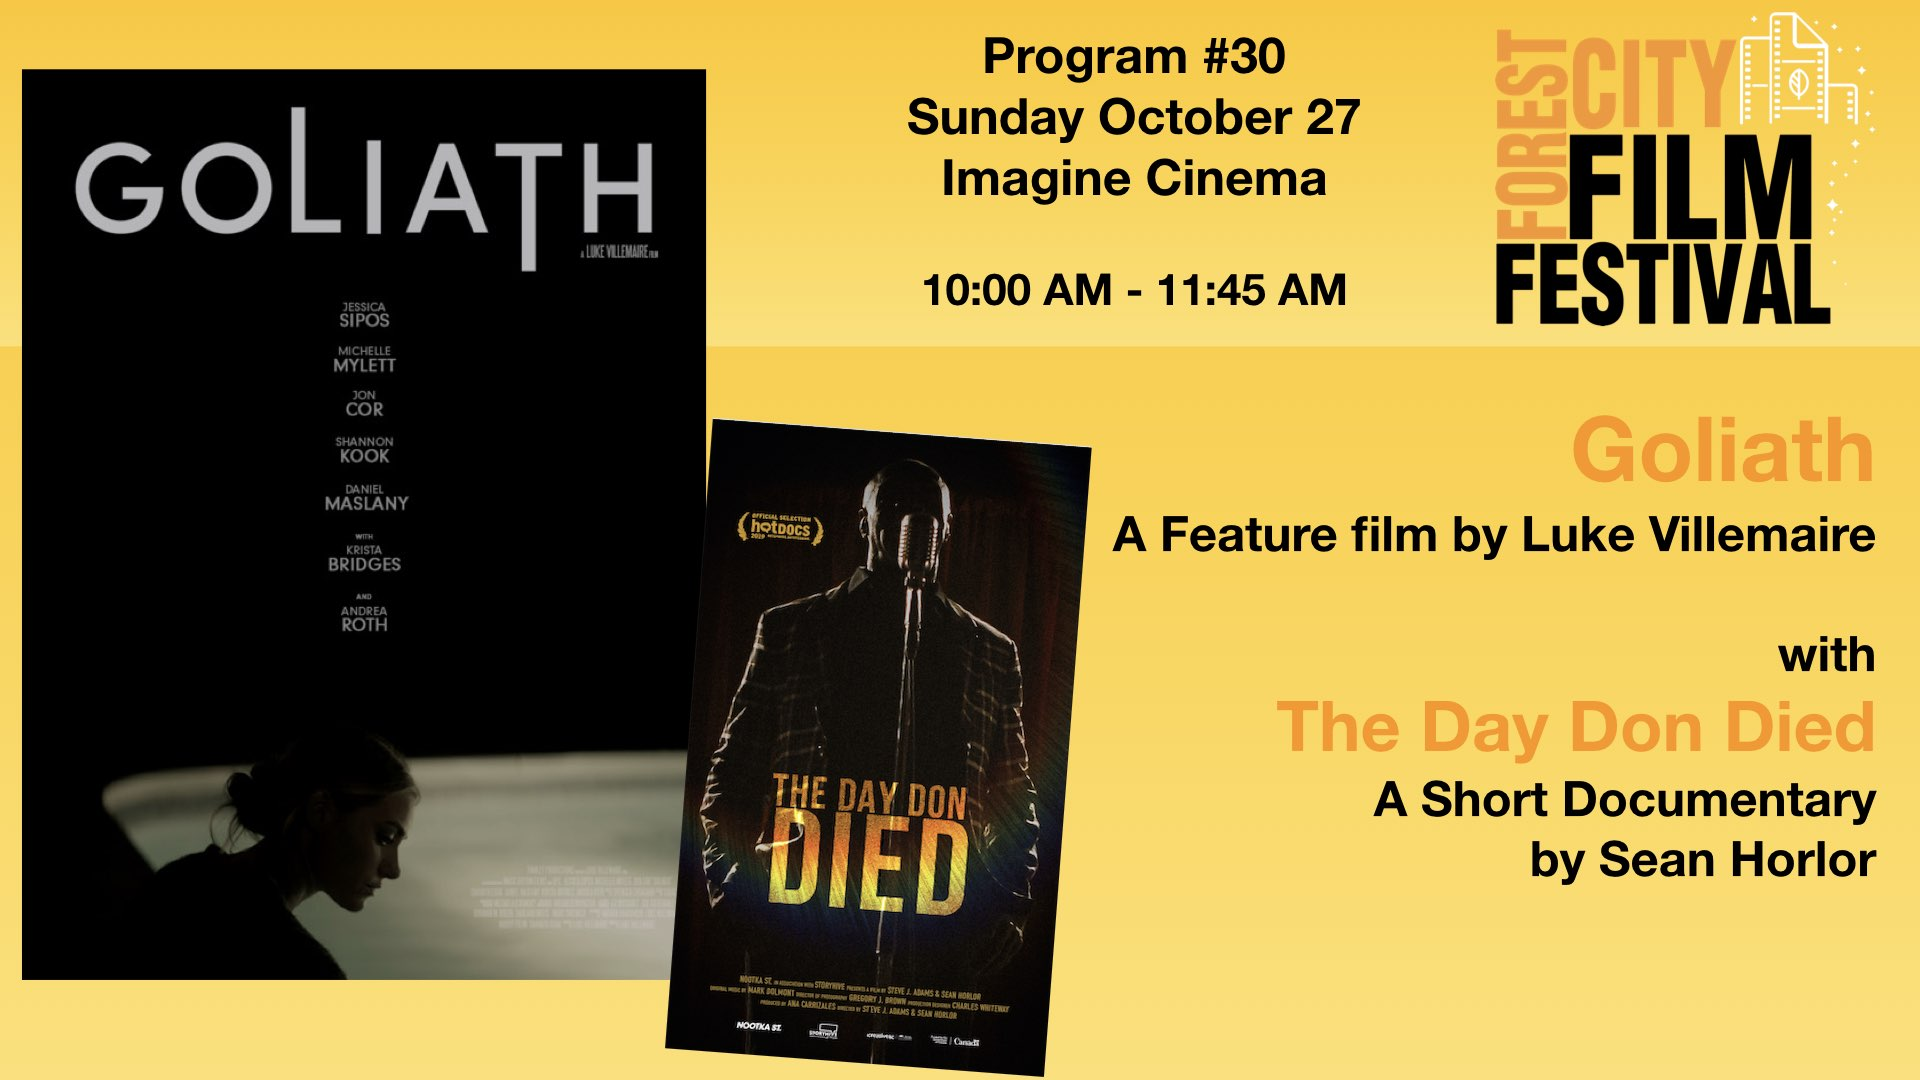 FCFF 2019 - Sunday Morning at Imagine Program #30 - Goliath with The Day Don Died